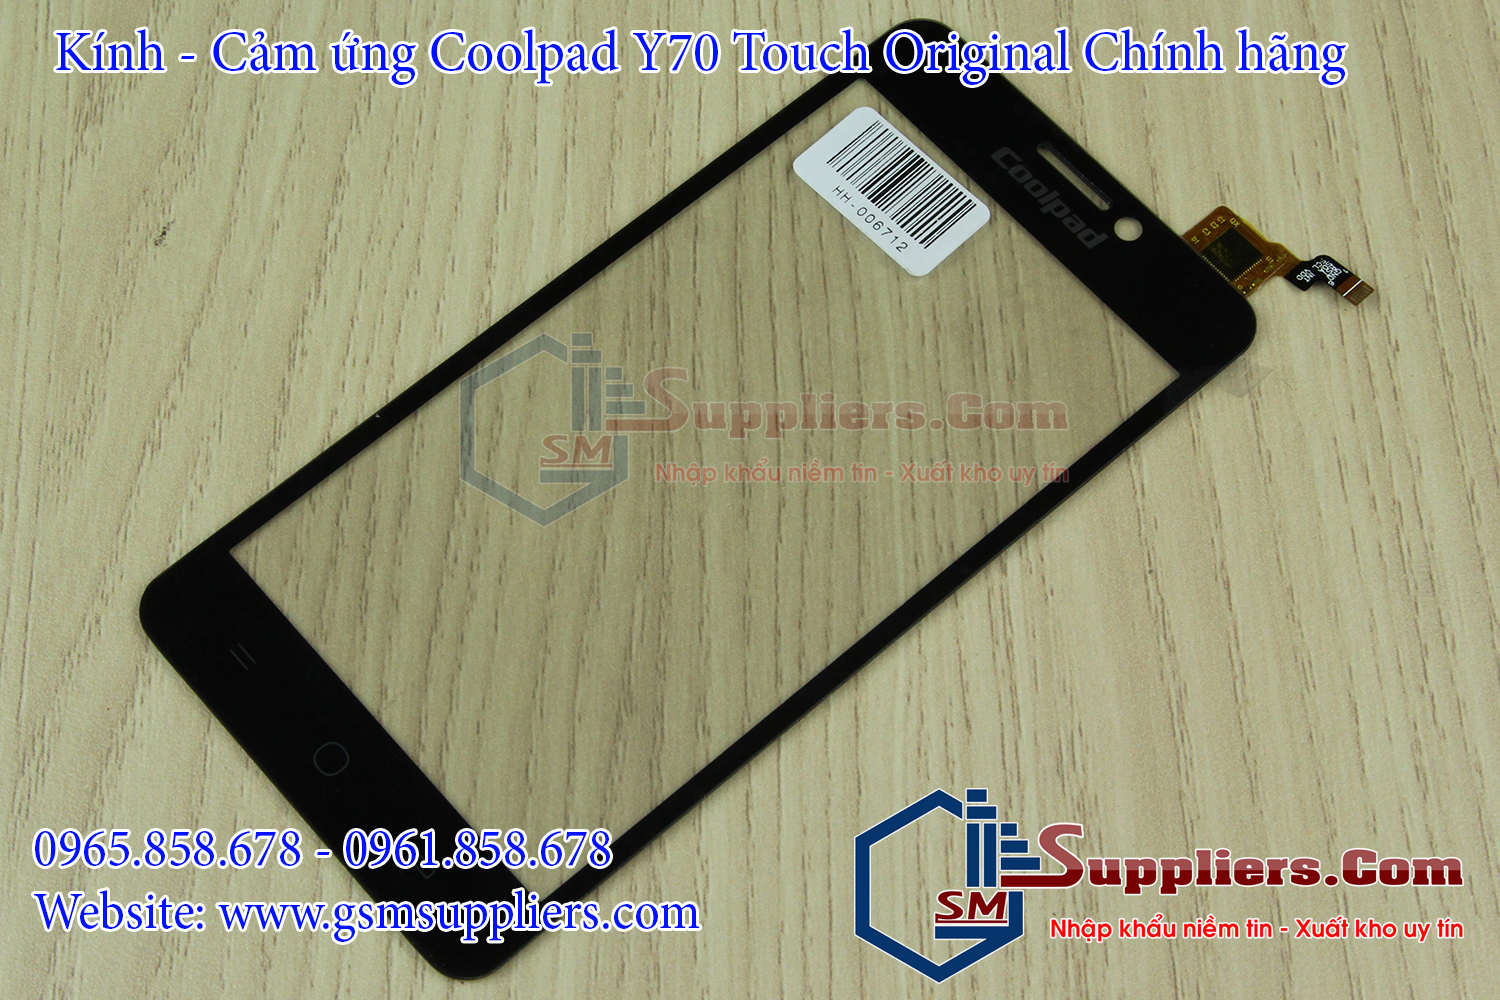 cam ung coolpad y70 hang chinh hang gia re tai ha noi 5